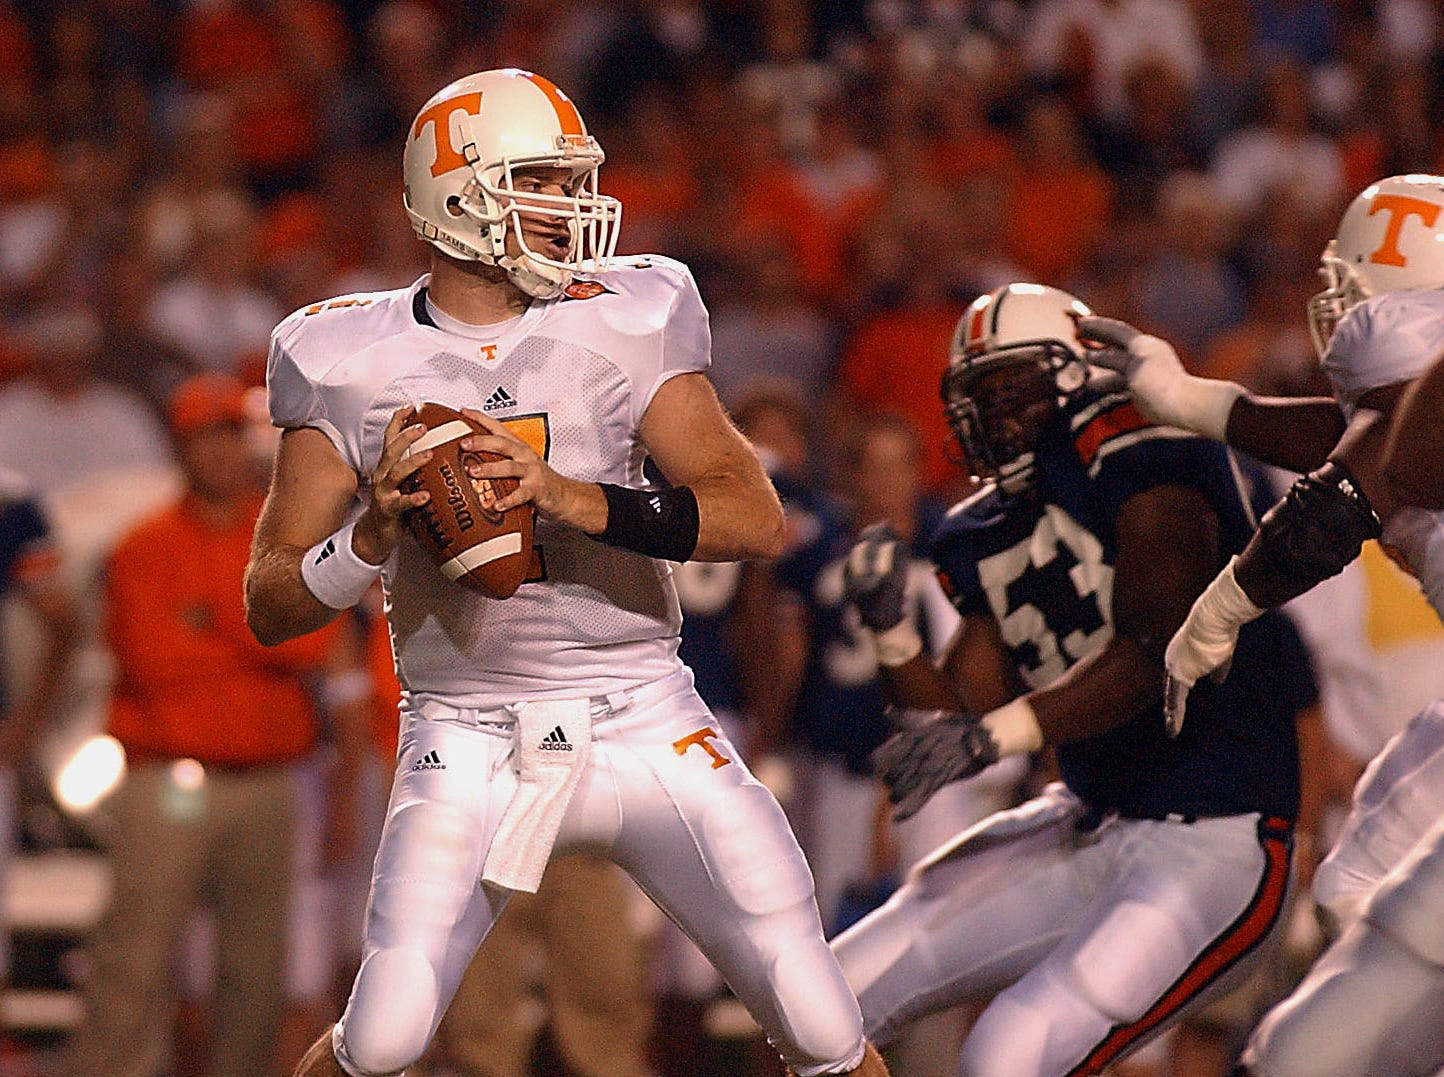 Tennessee quarterback Casey Clausen looks for an open receiver during second half action Saturday night in Auburn, AL in 2003.  Tennessee lost to Auburn 28-21.